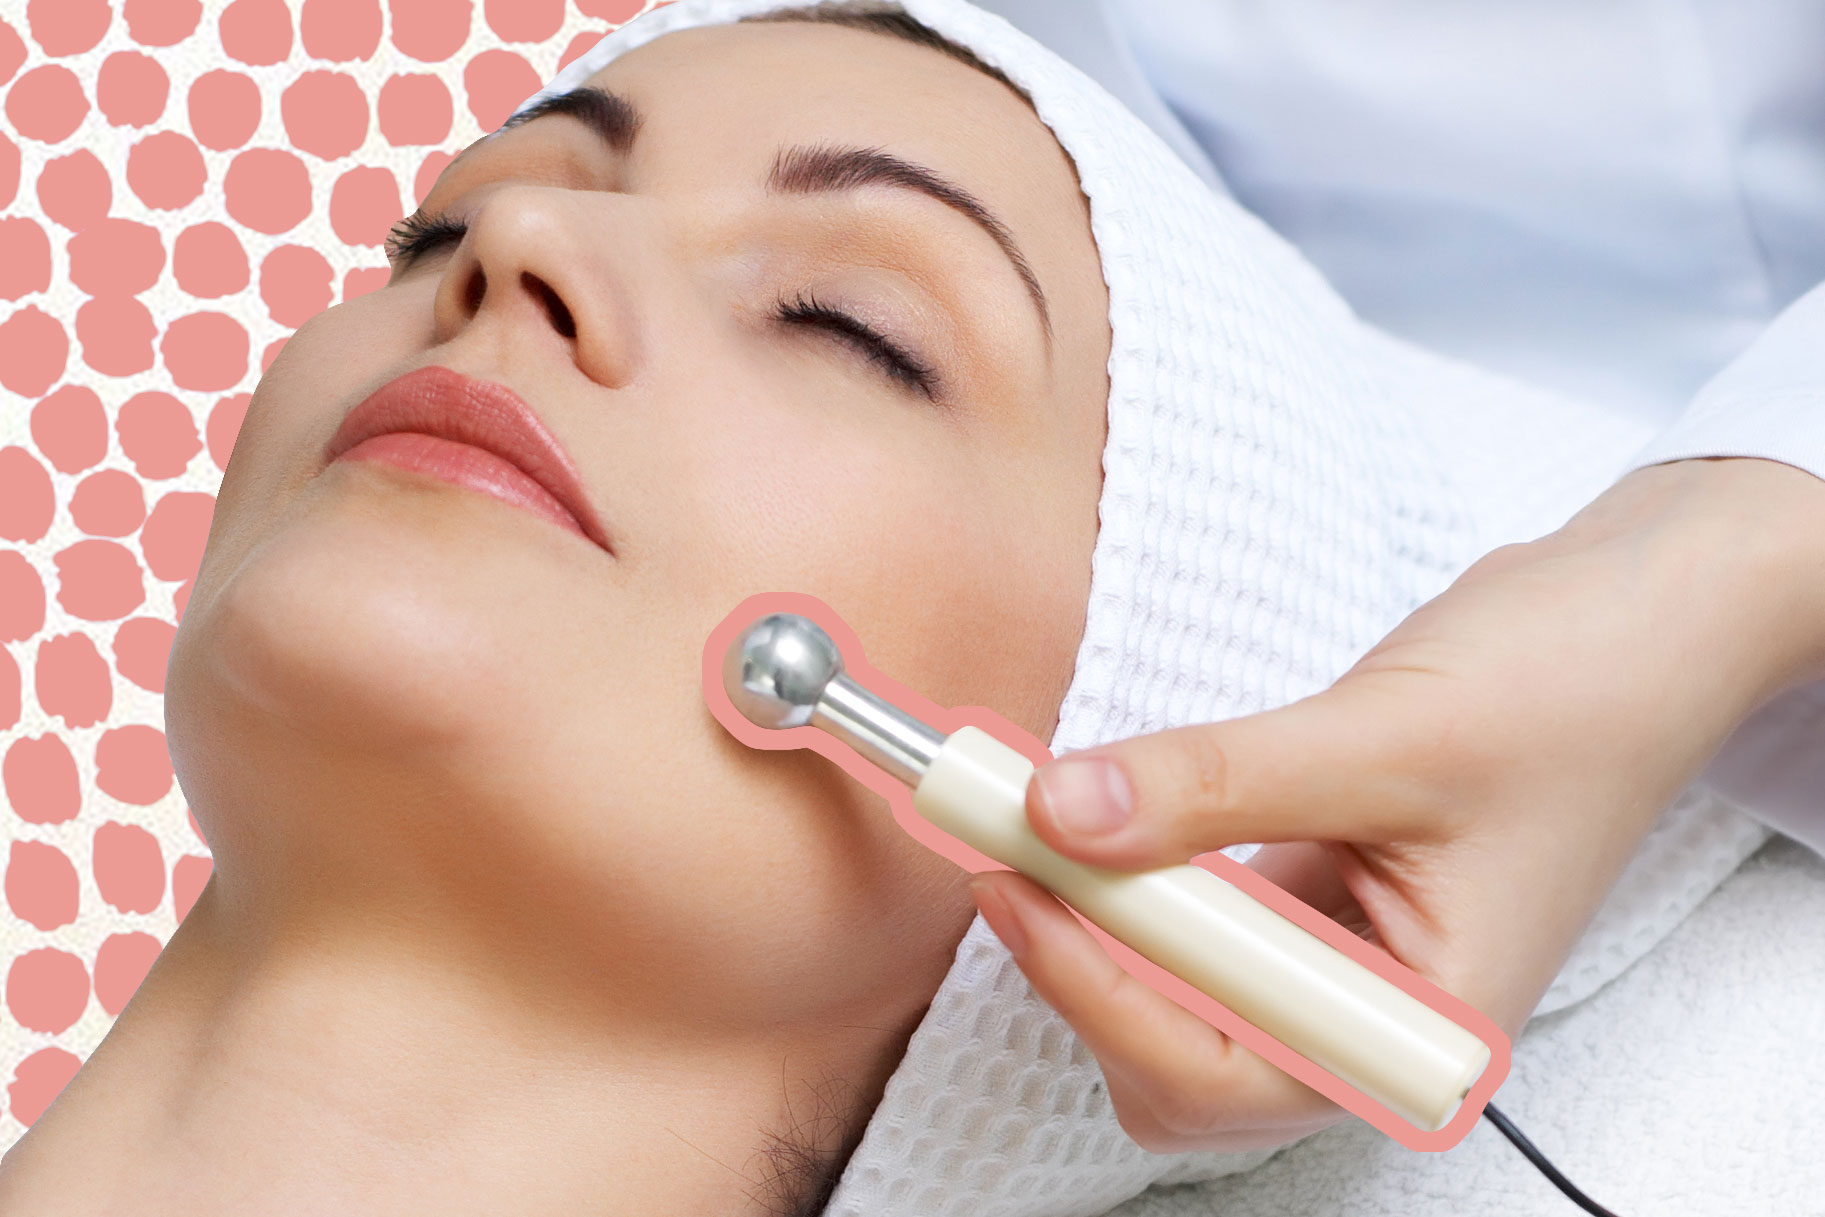 Electrolysis Hair Removal: Everything You Need to Know